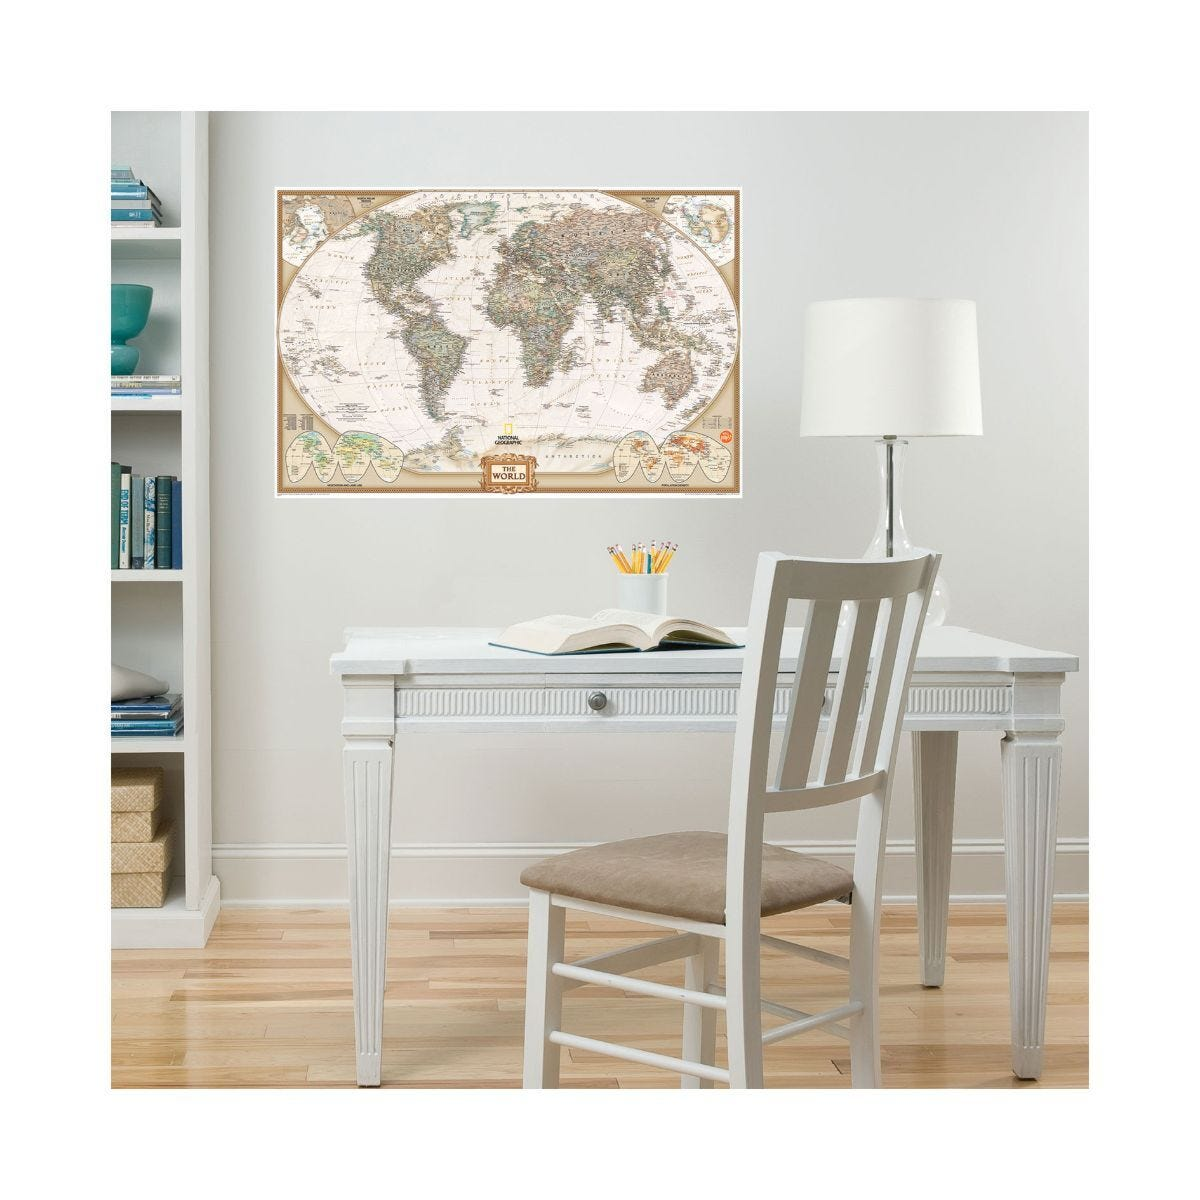 Dry Erase Executive World Map